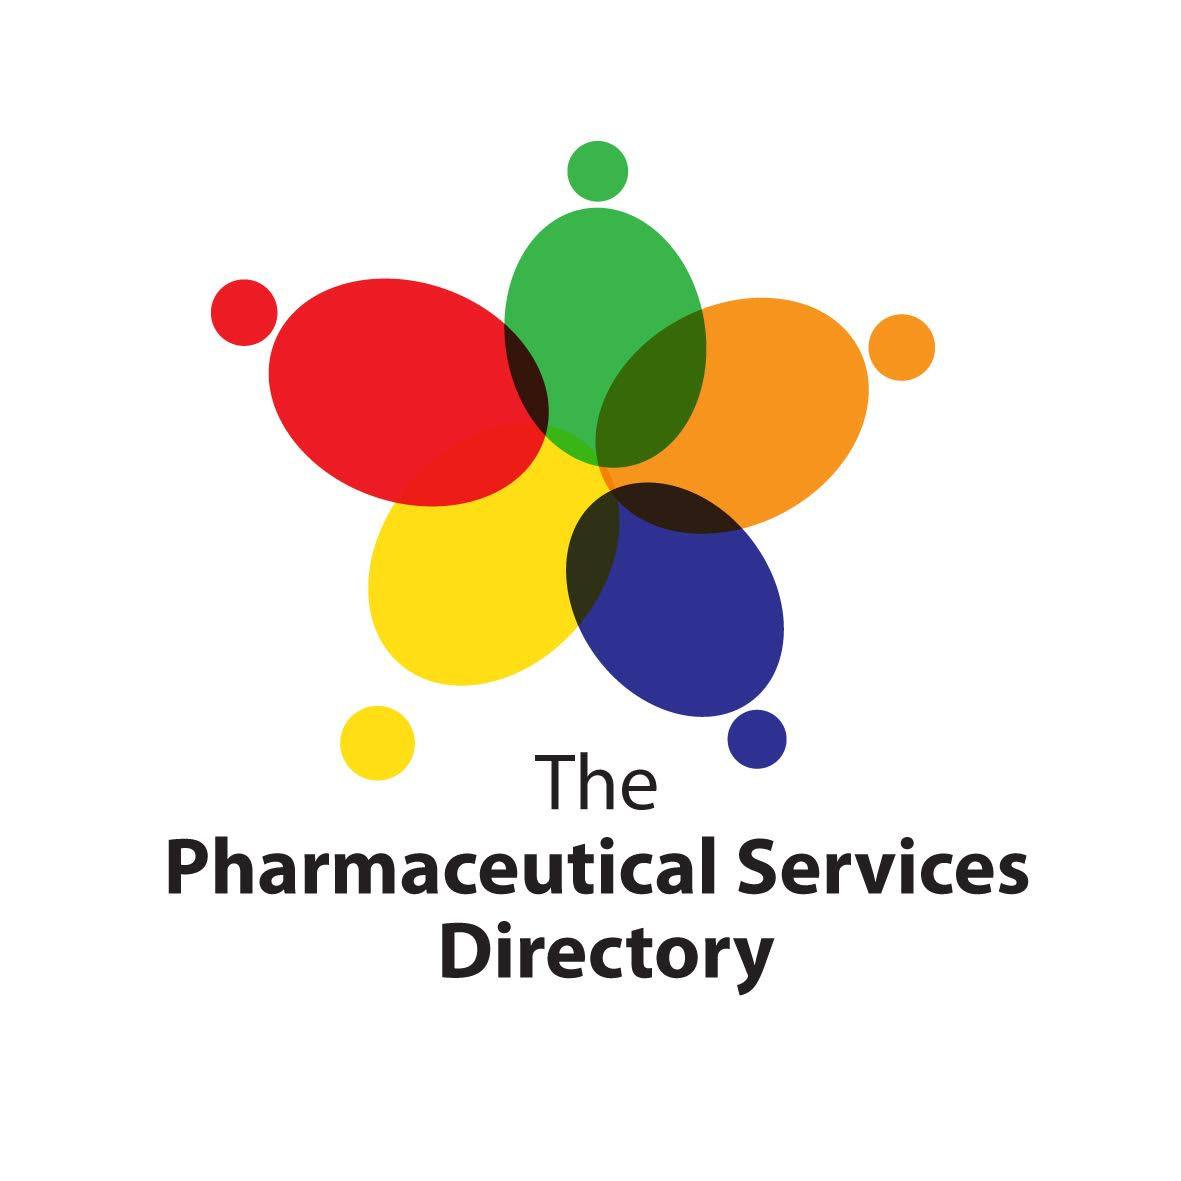 The Pharmaceutical Services Directory Logo